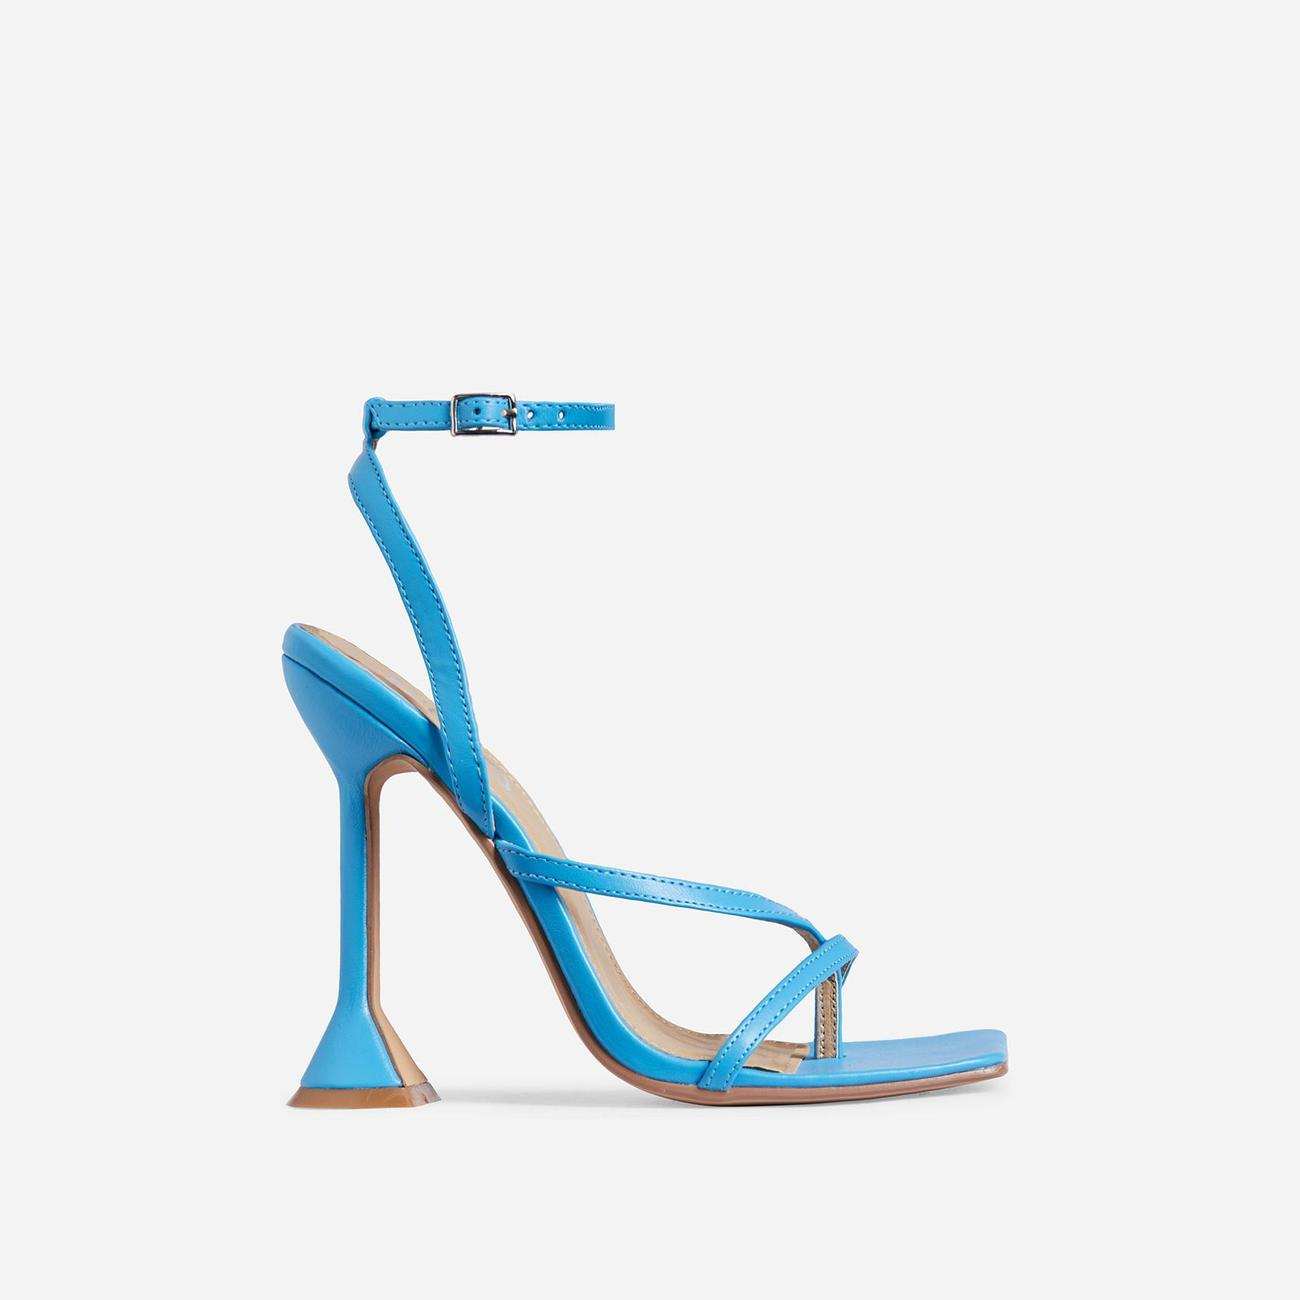 Freestyle Square Toe Pyramid Heel In Blue Faux Leather Image 1